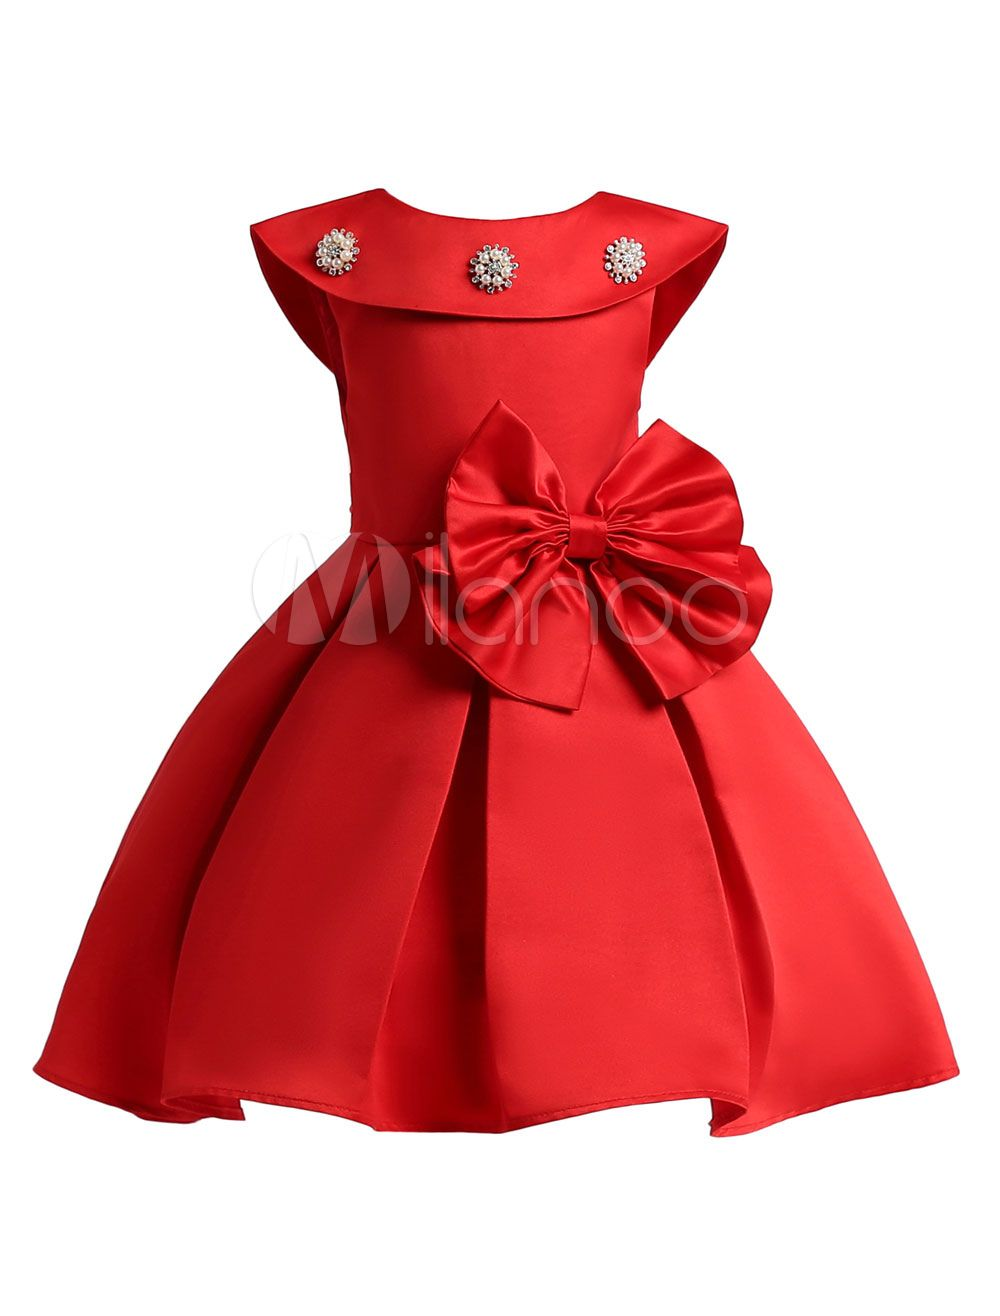 Flower girl dresses red satin a line bow sash beaded short pleated